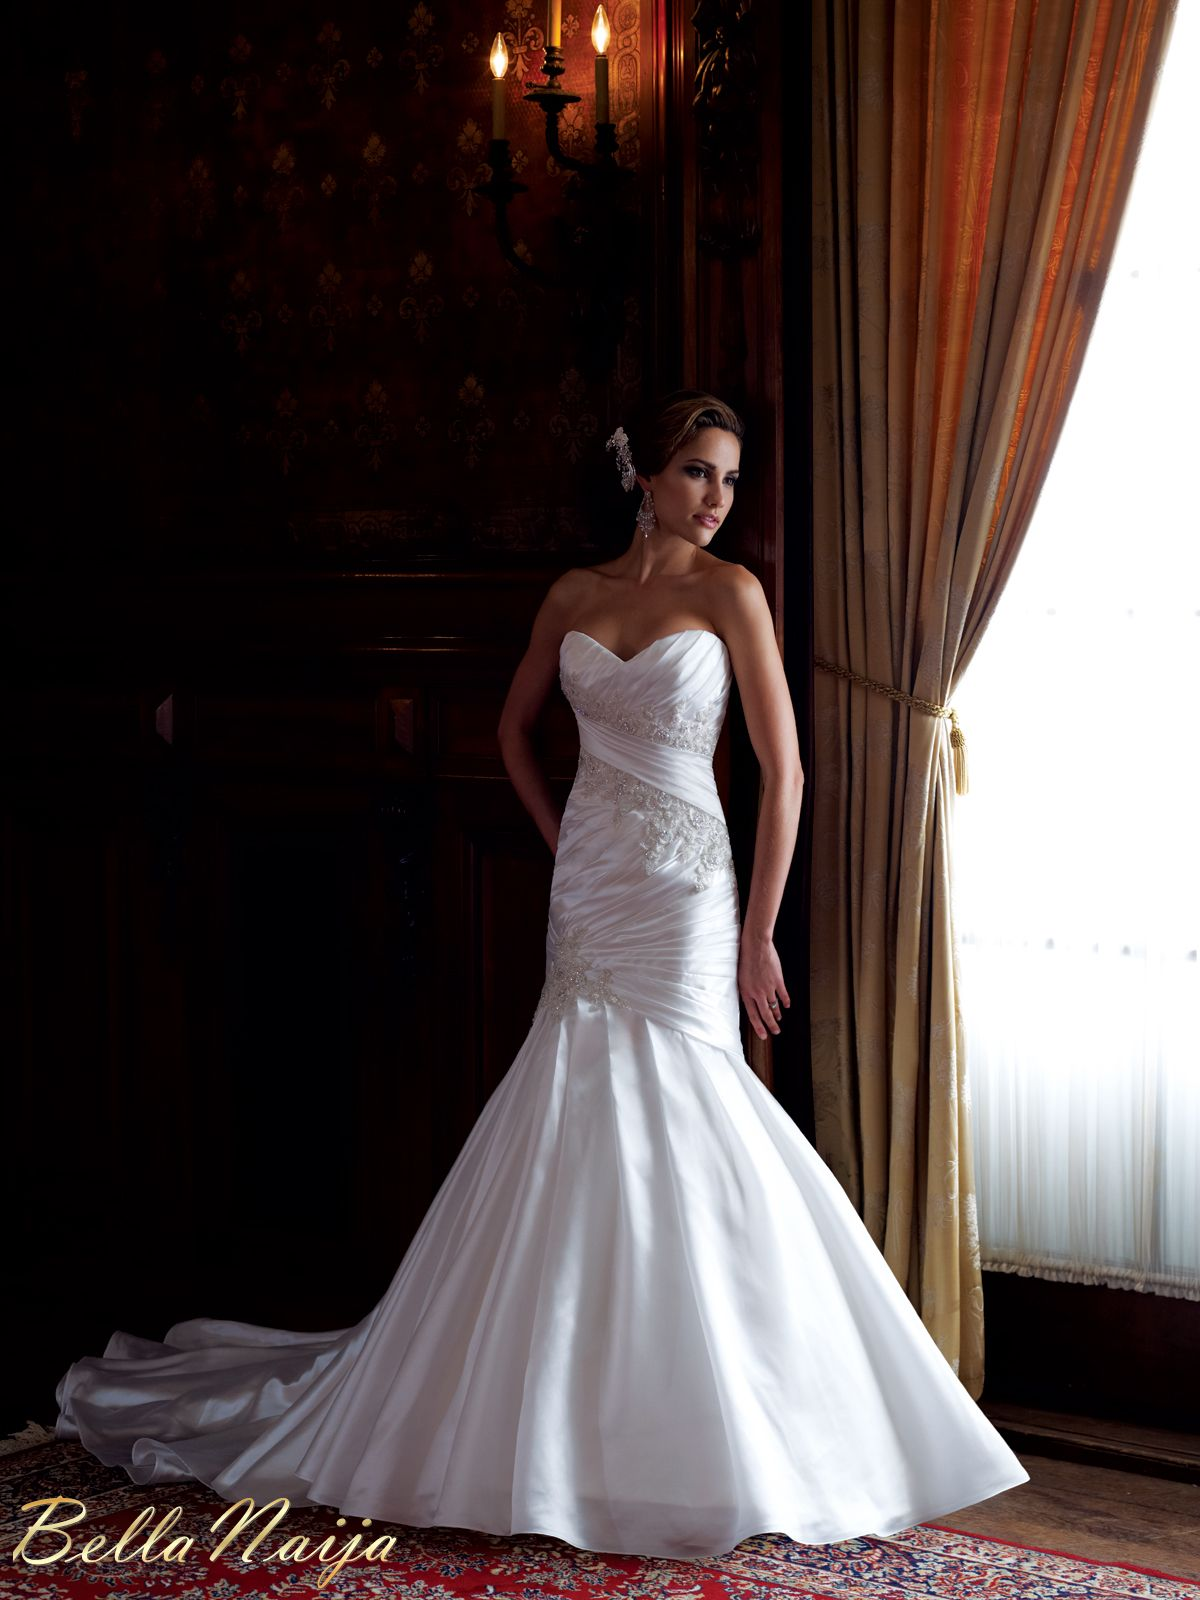 Bn bridal david tutera for mon cheri spring 2013 collection for How much are mon cheri wedding dresses